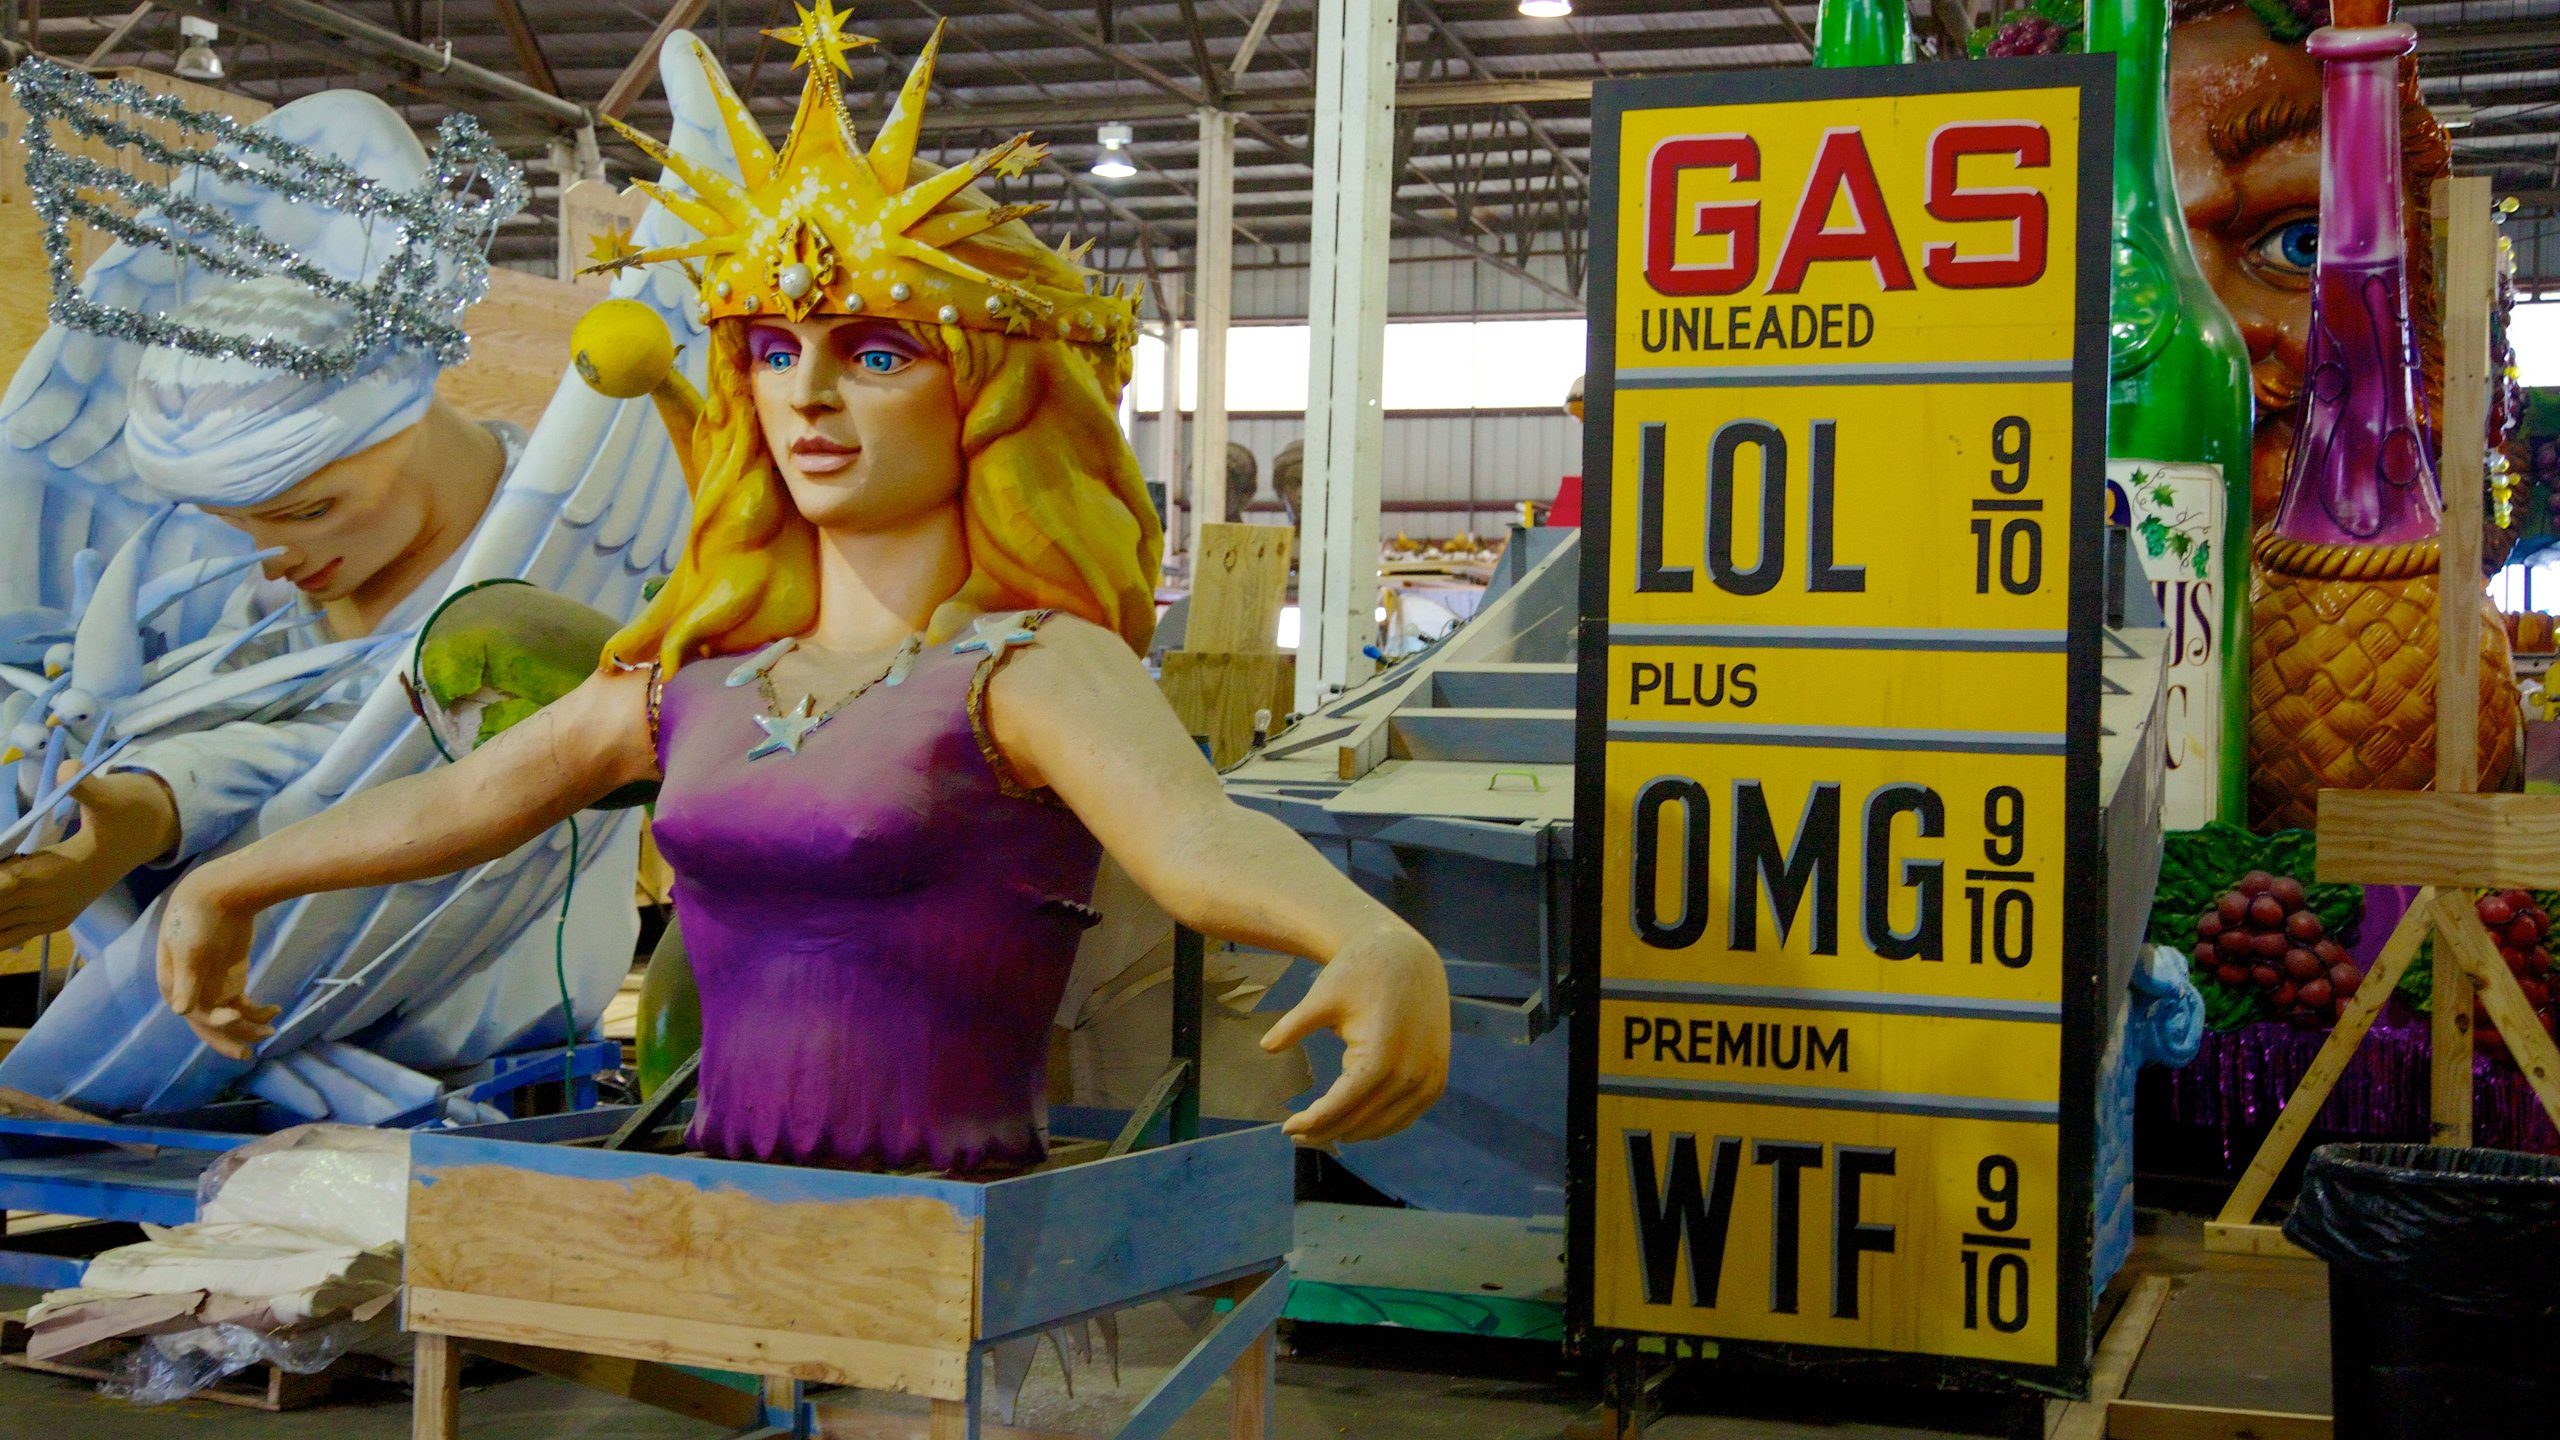 Mardi Gras World, New Orleans, Louisiana, United States of America